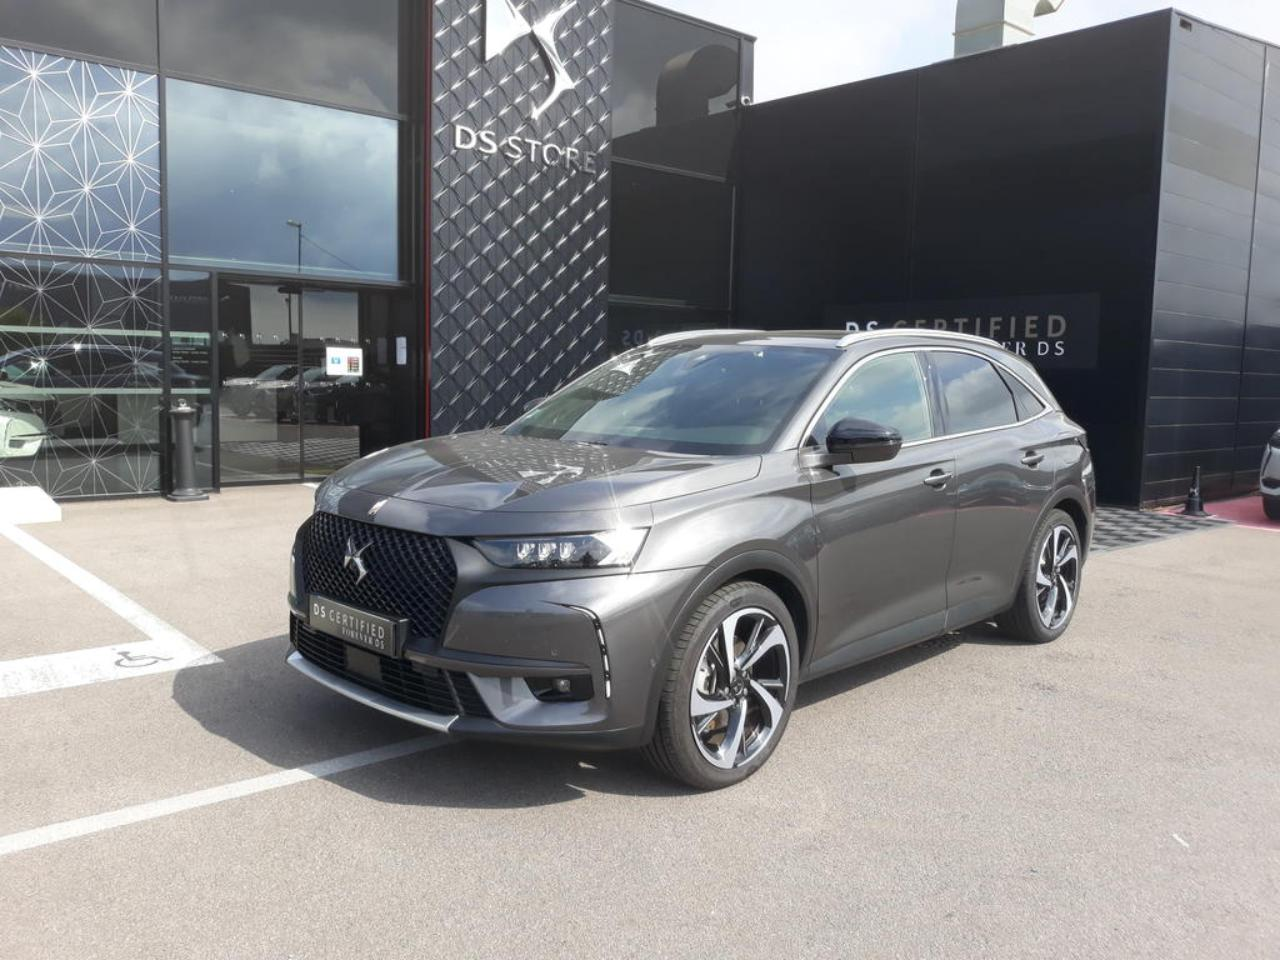 Ds DS 7 Crossback 7 Crossback Hybride E-Tense EAT8 4x4 Grand Chic